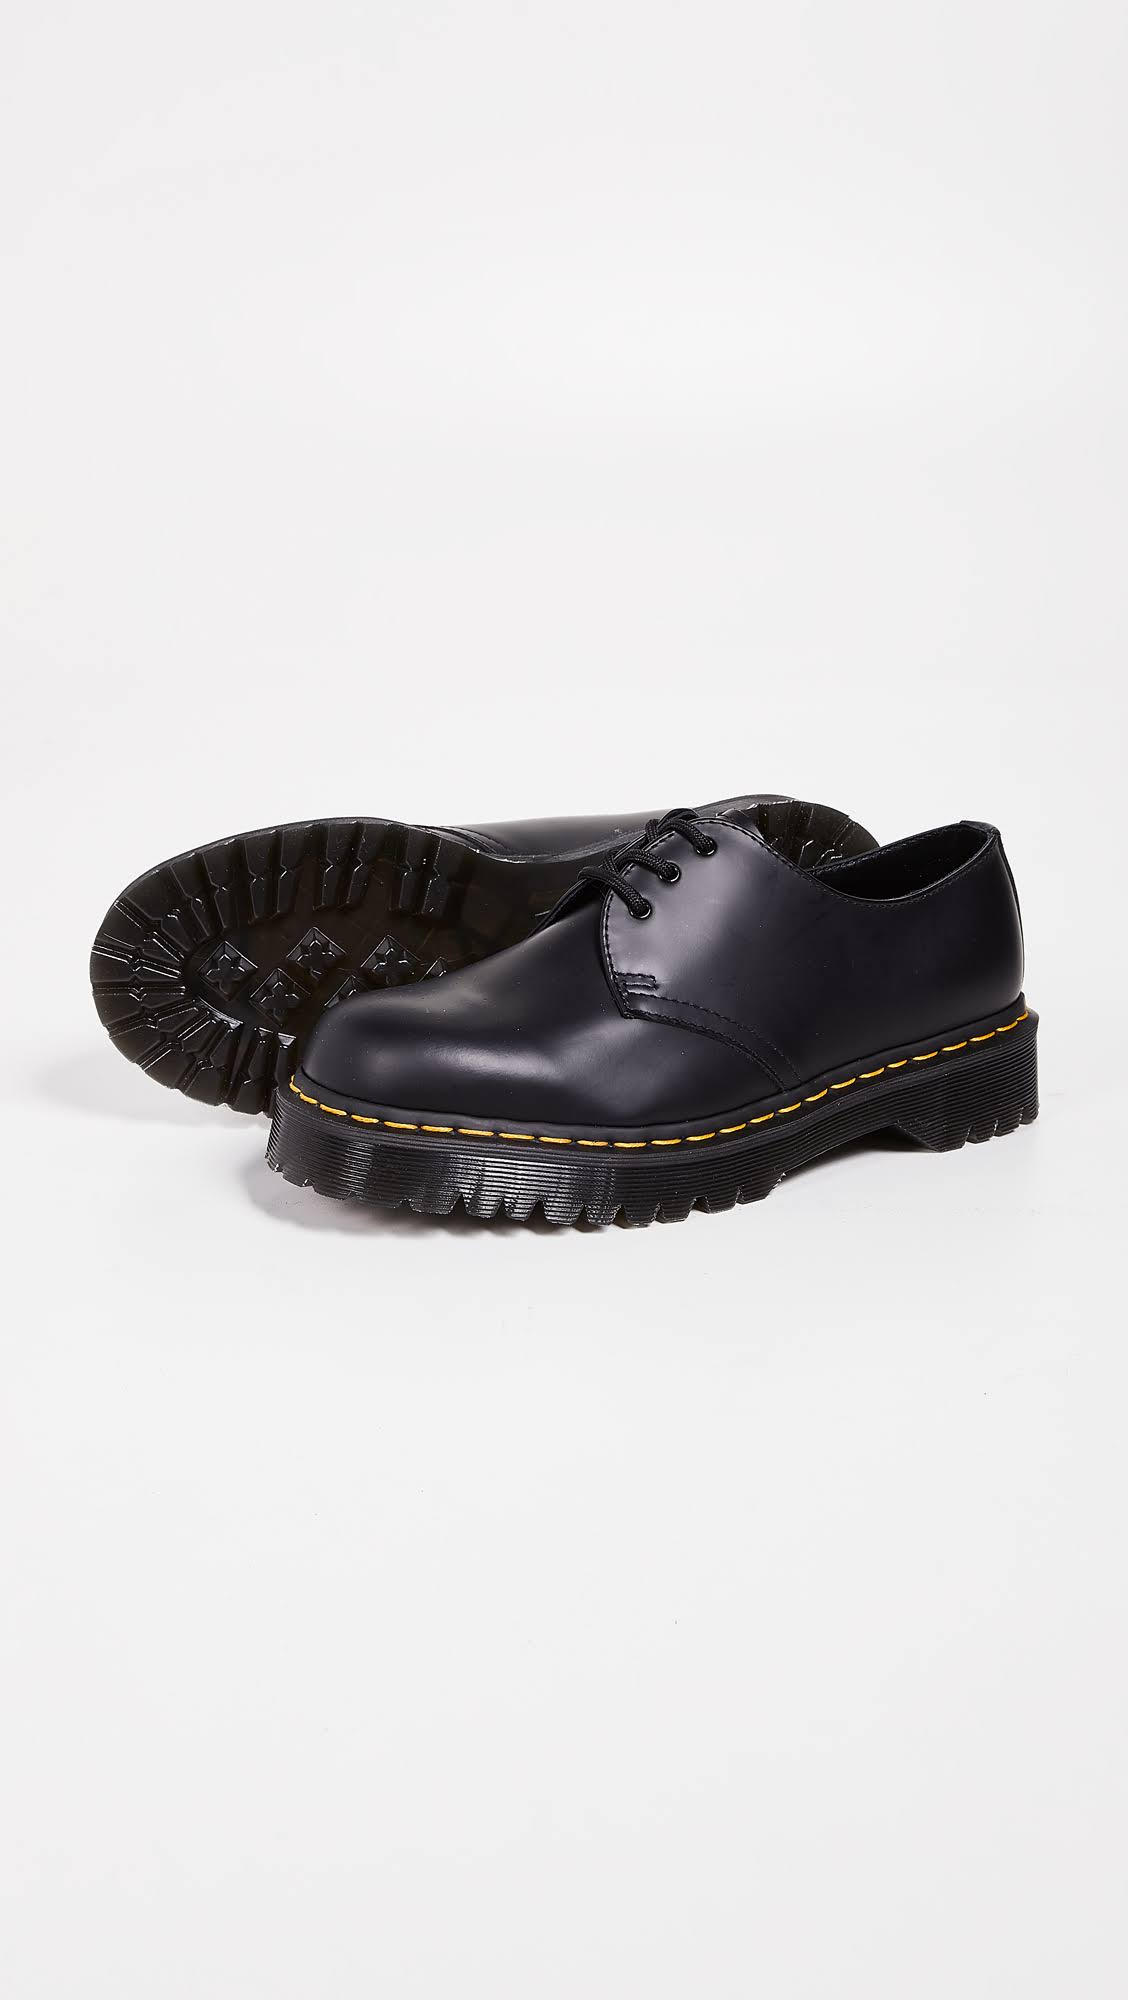 Shoes 1461 13 Bex 3 Dr Martens Black Eye Xw6FH1